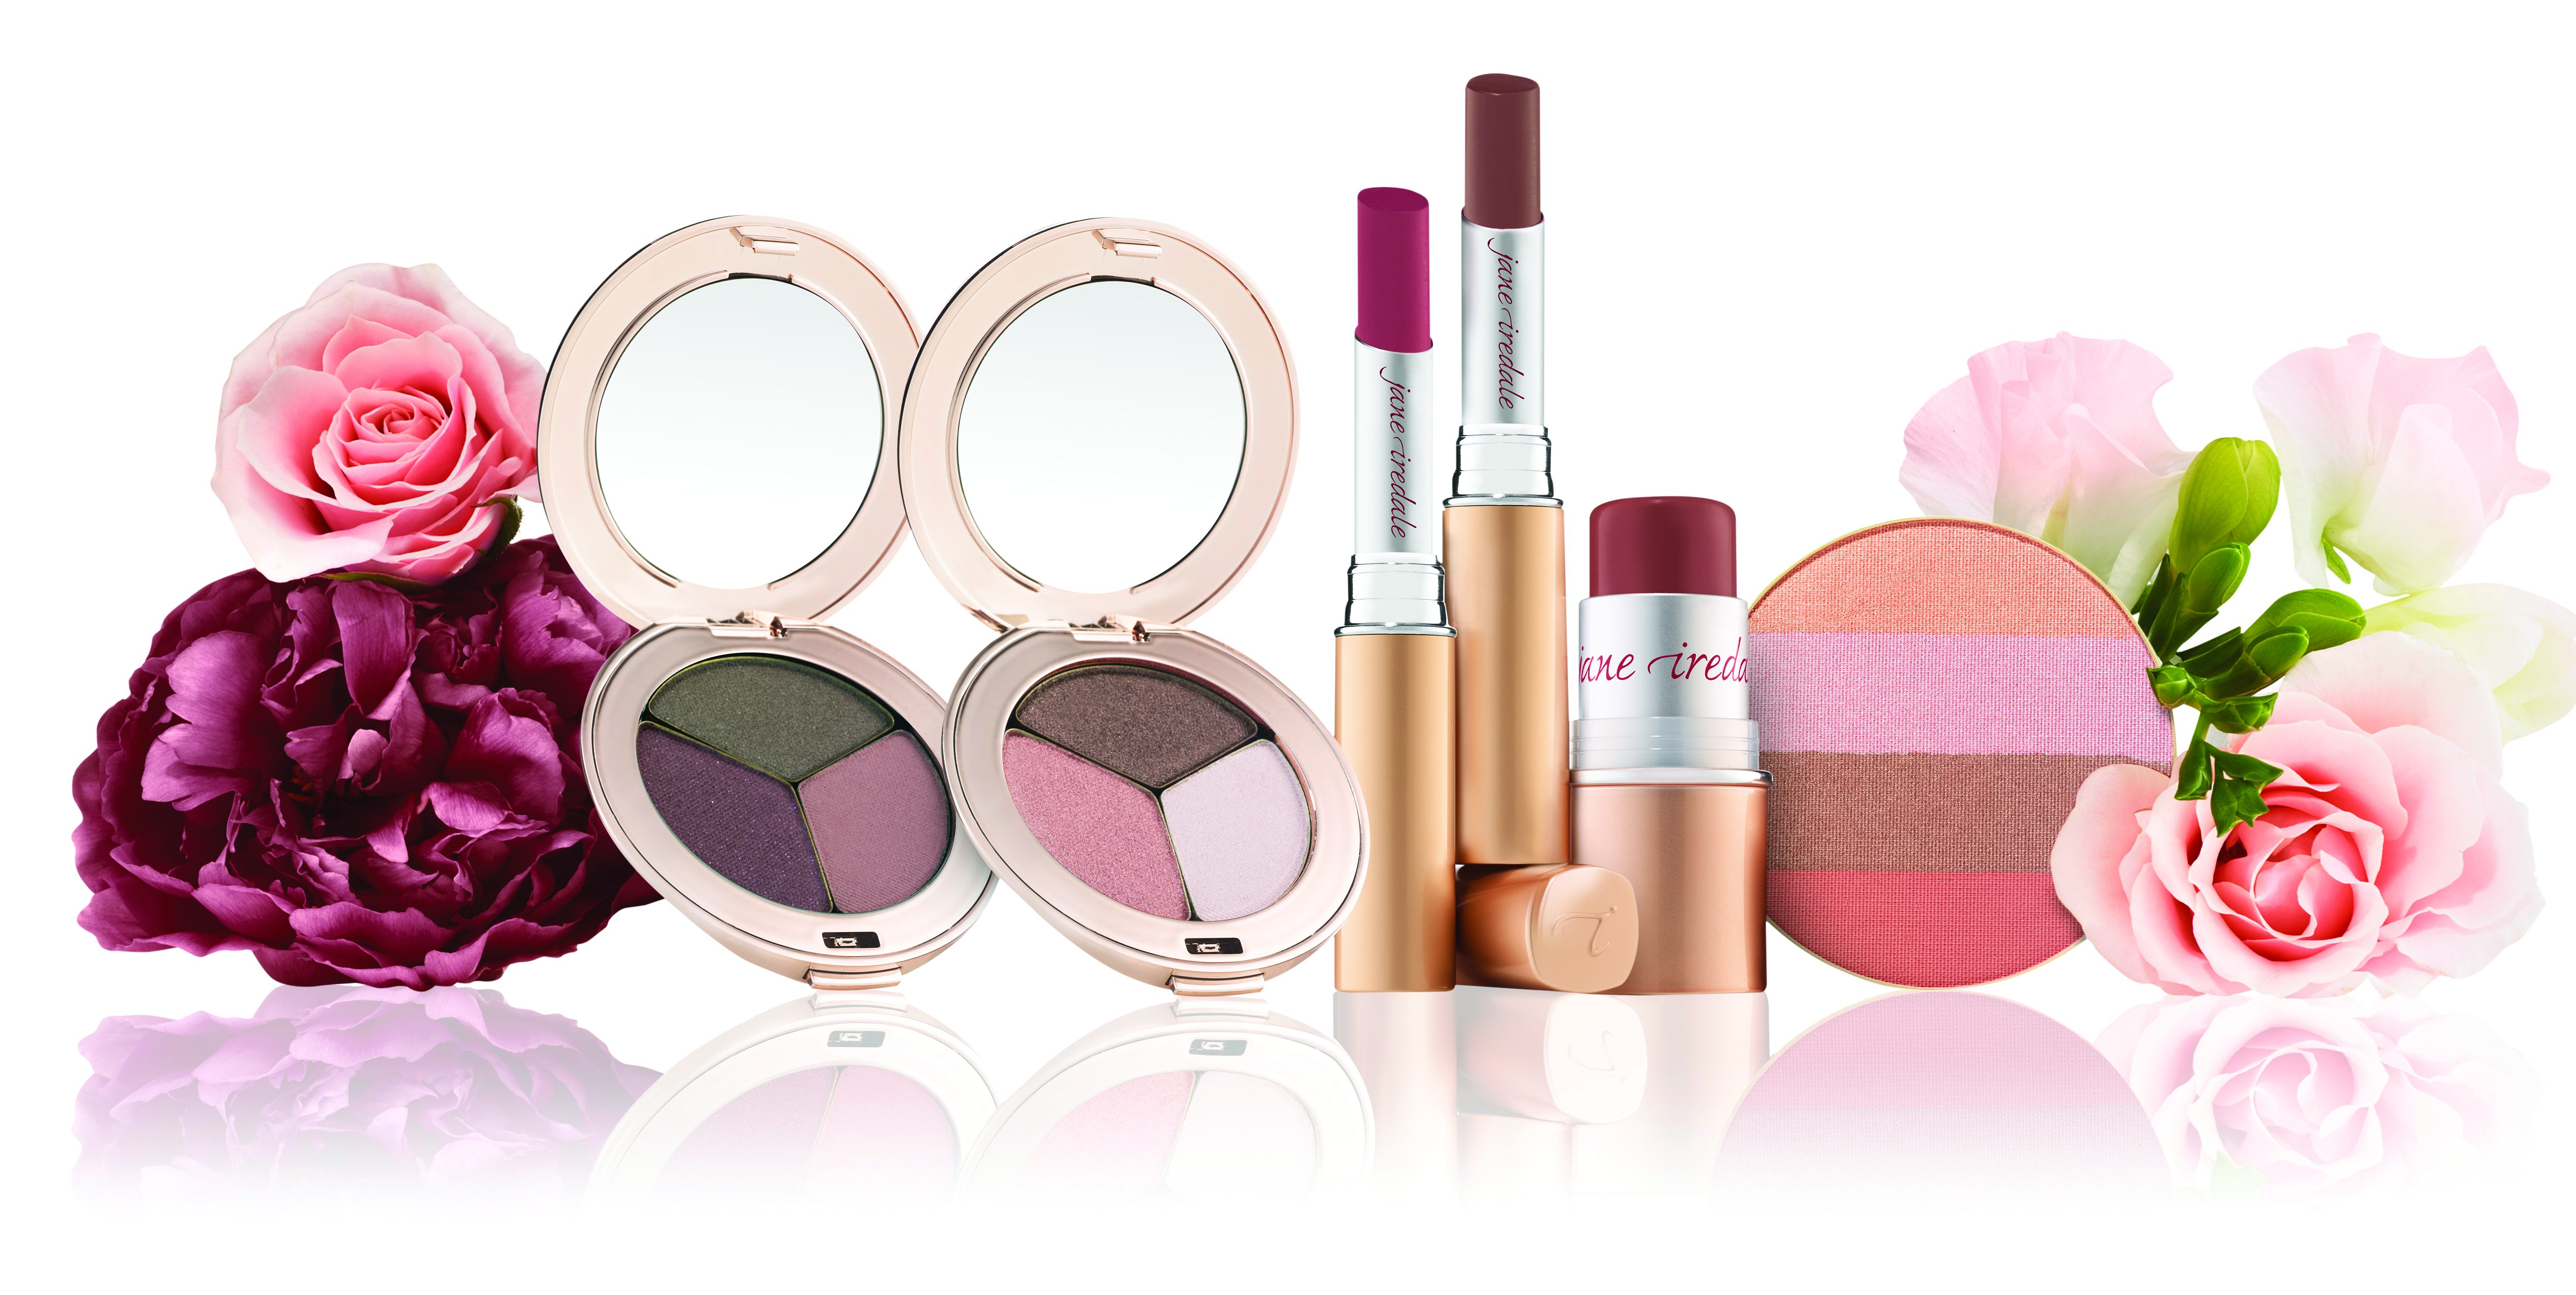 jane iredale lente collectie